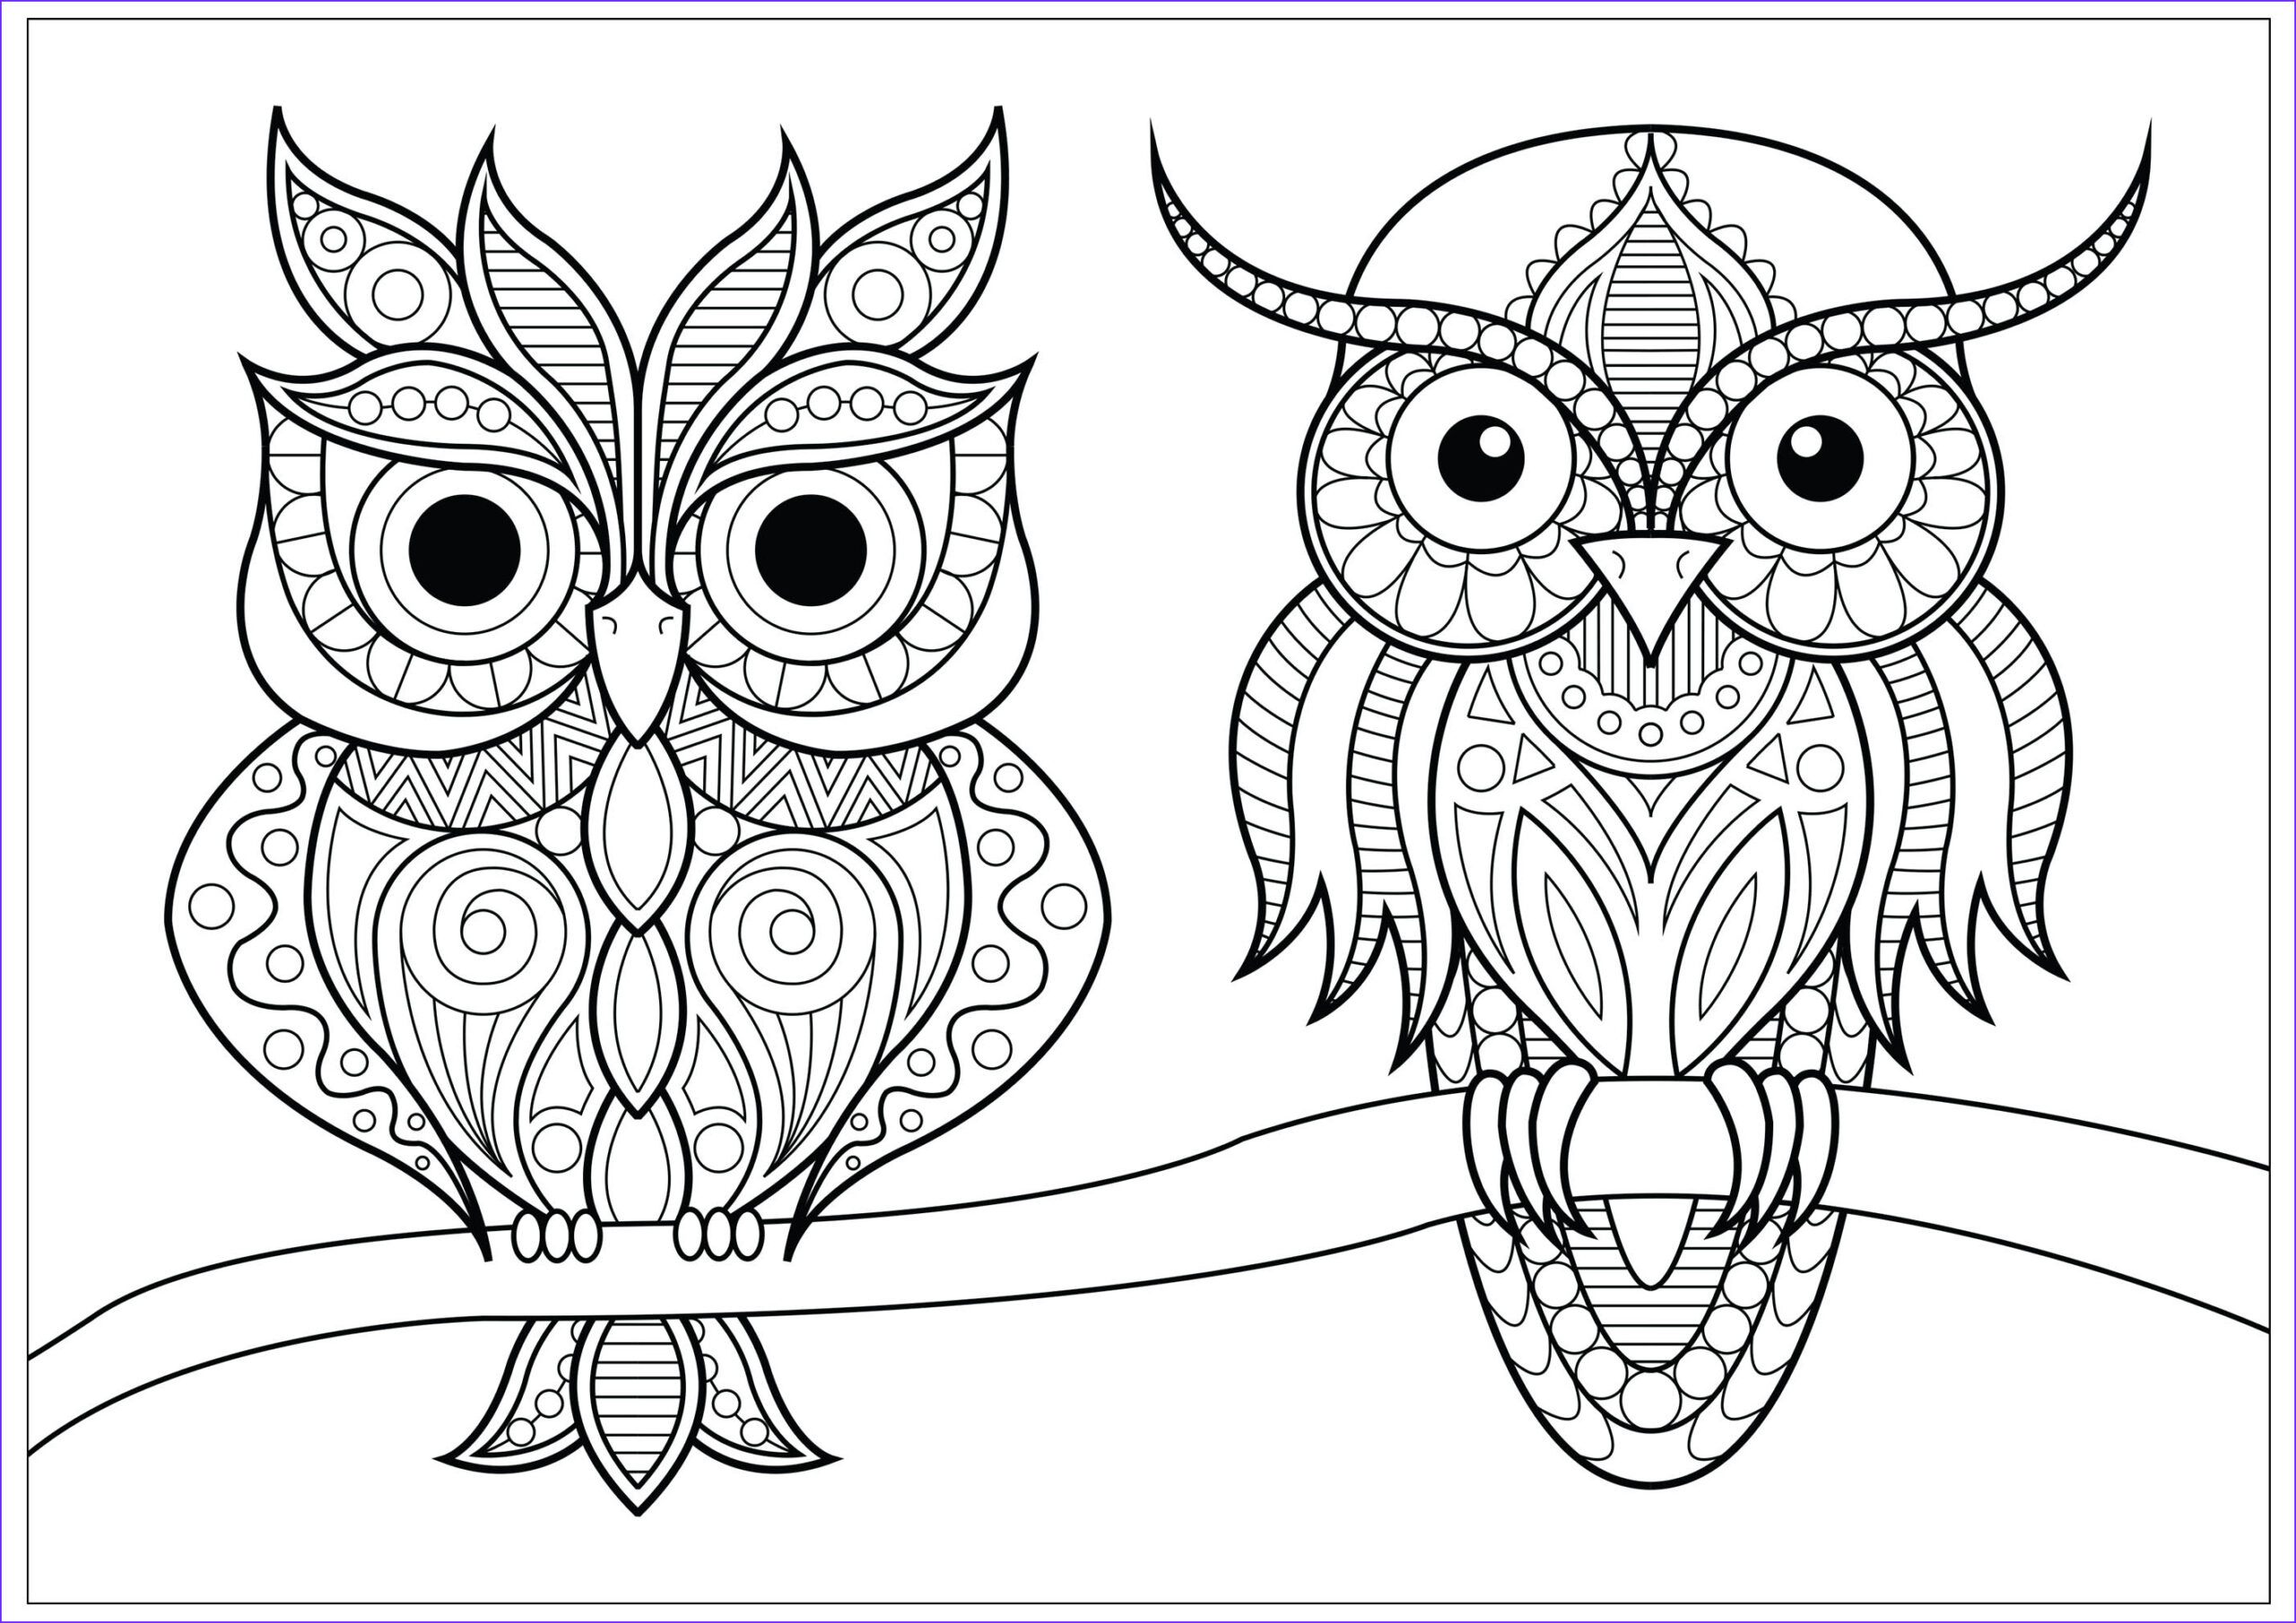 image=owls coloring two owls with simple patterns on branch 1